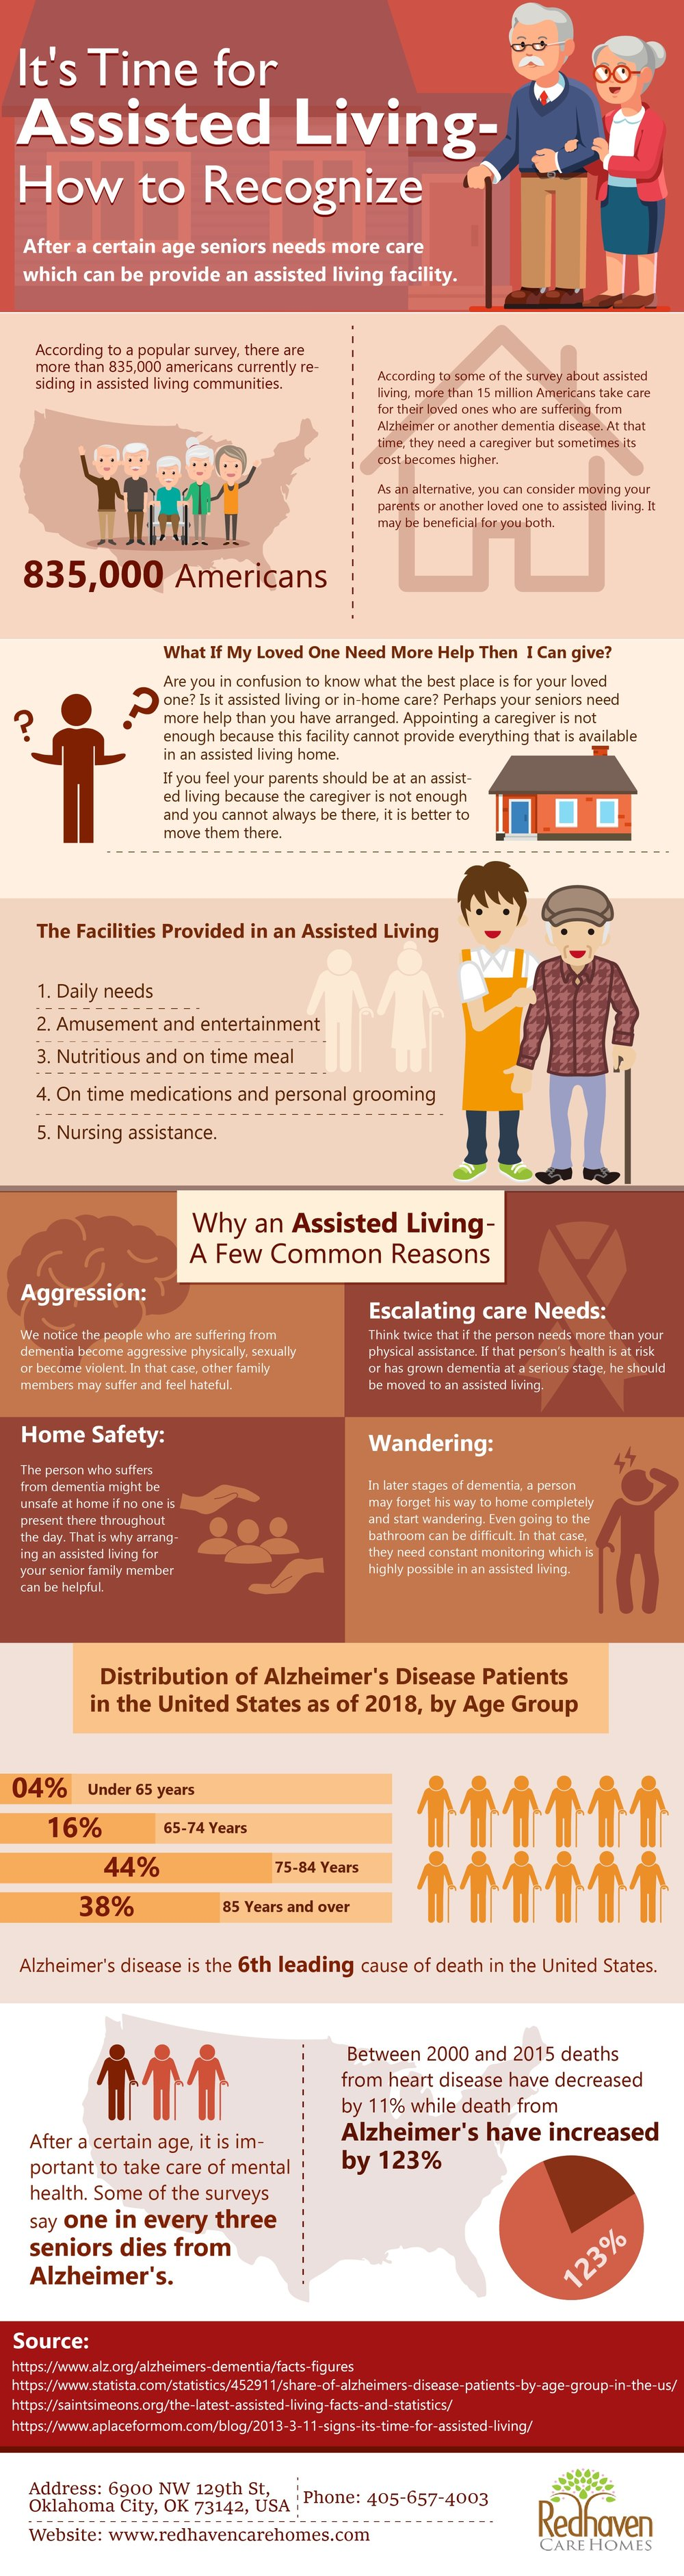 It's Time for Assisted Living